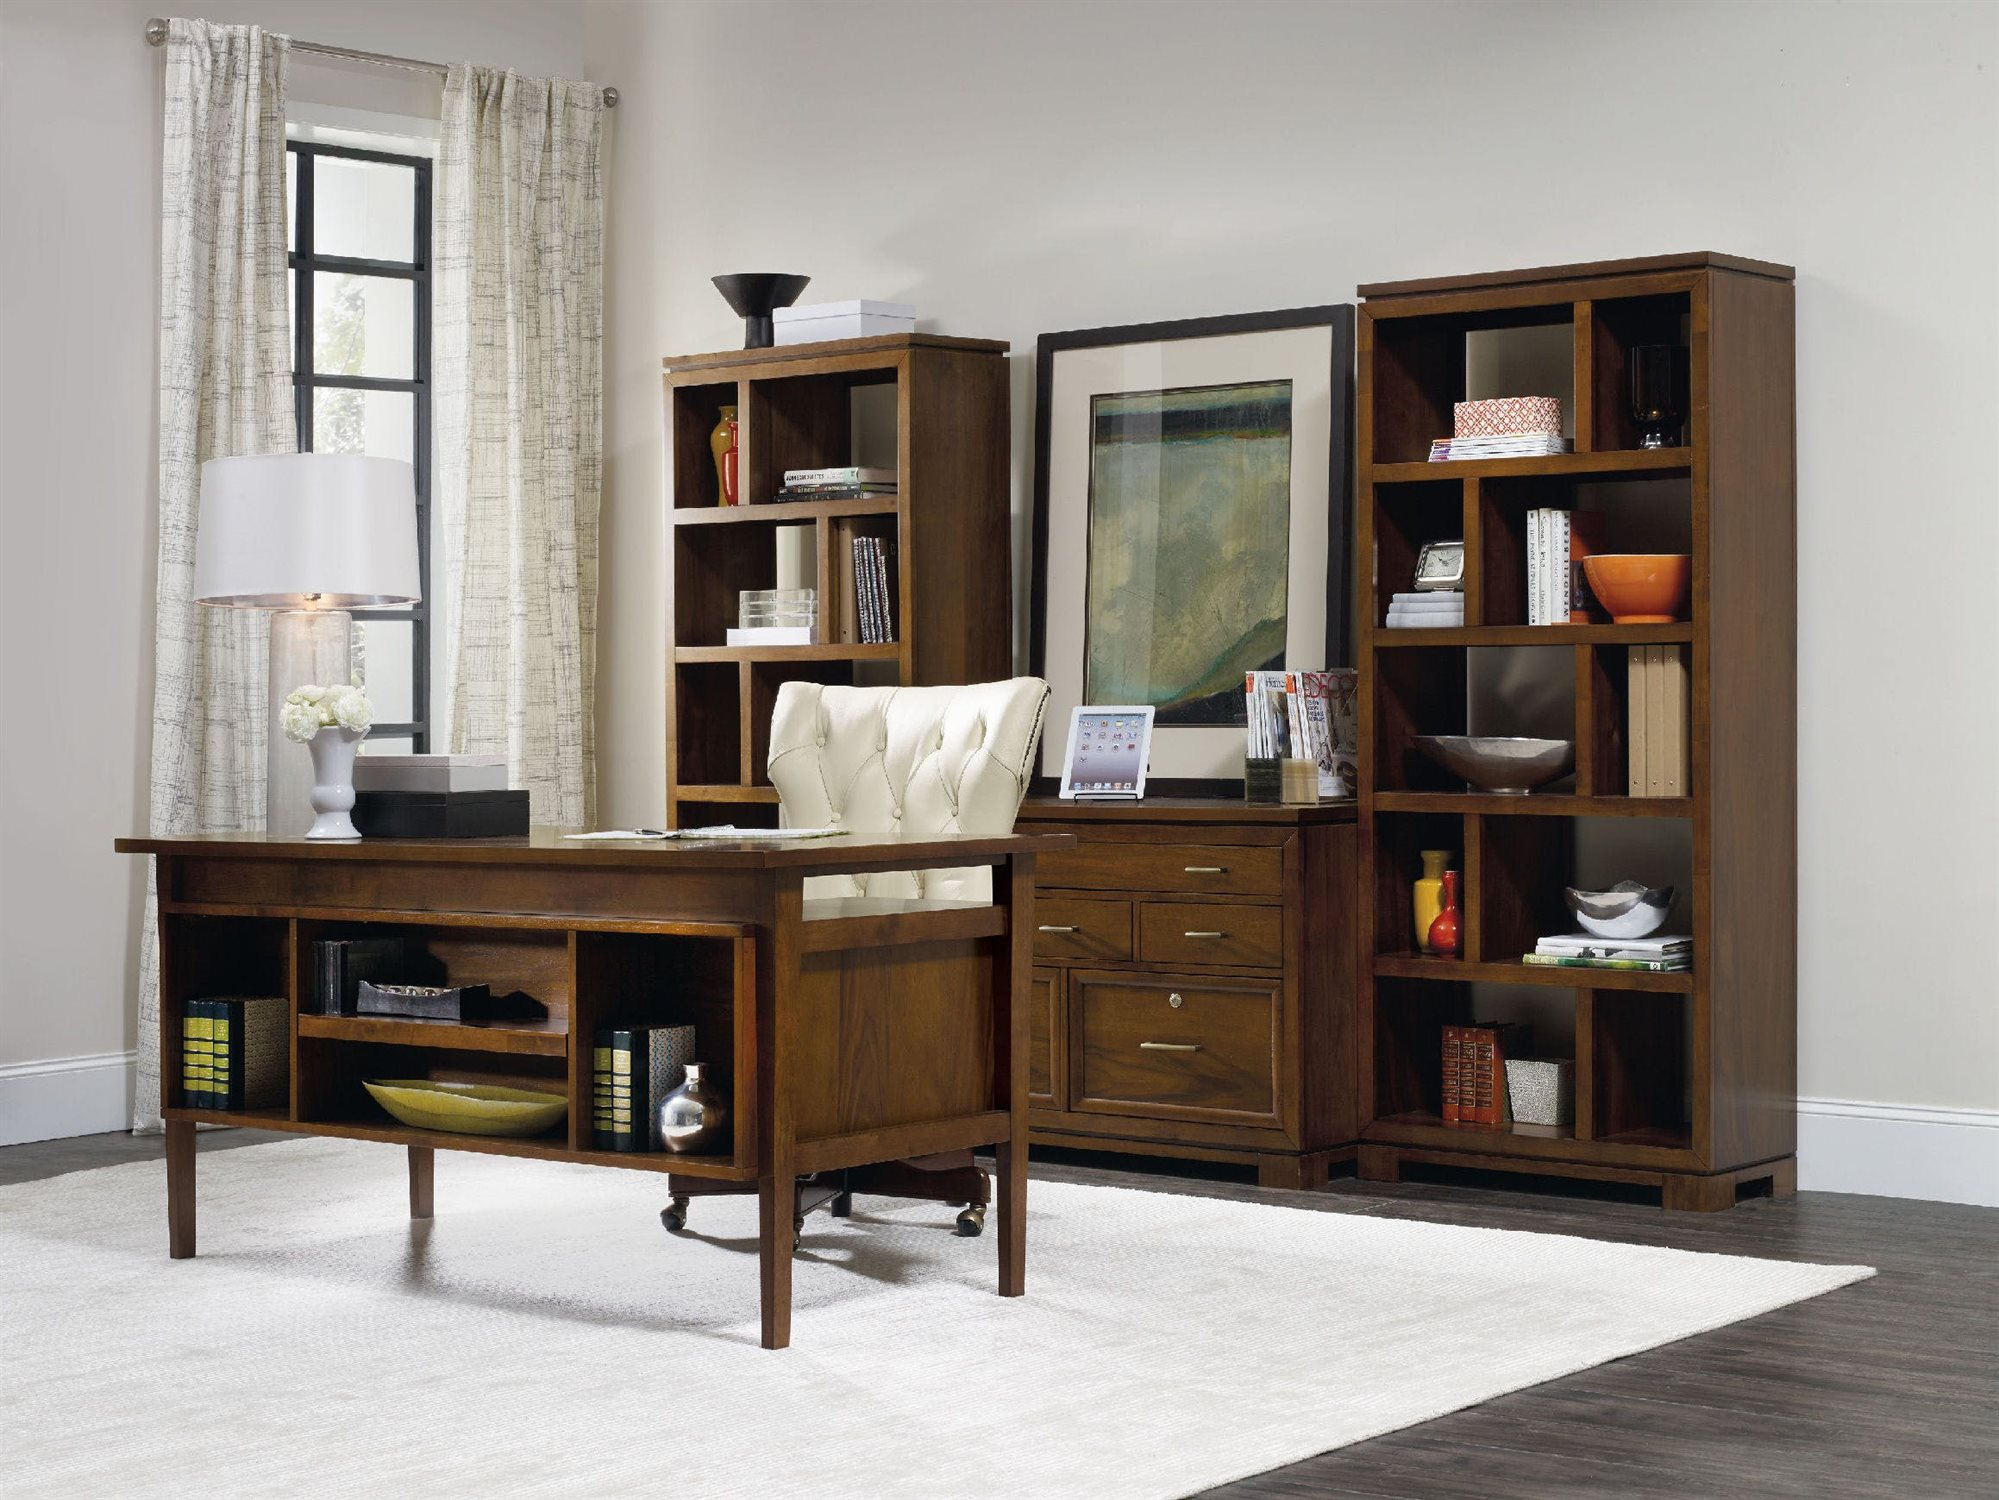 luxe designs medium wood home office set lxd54291035441set. Black Bedroom Furniture Sets. Home Design Ideas